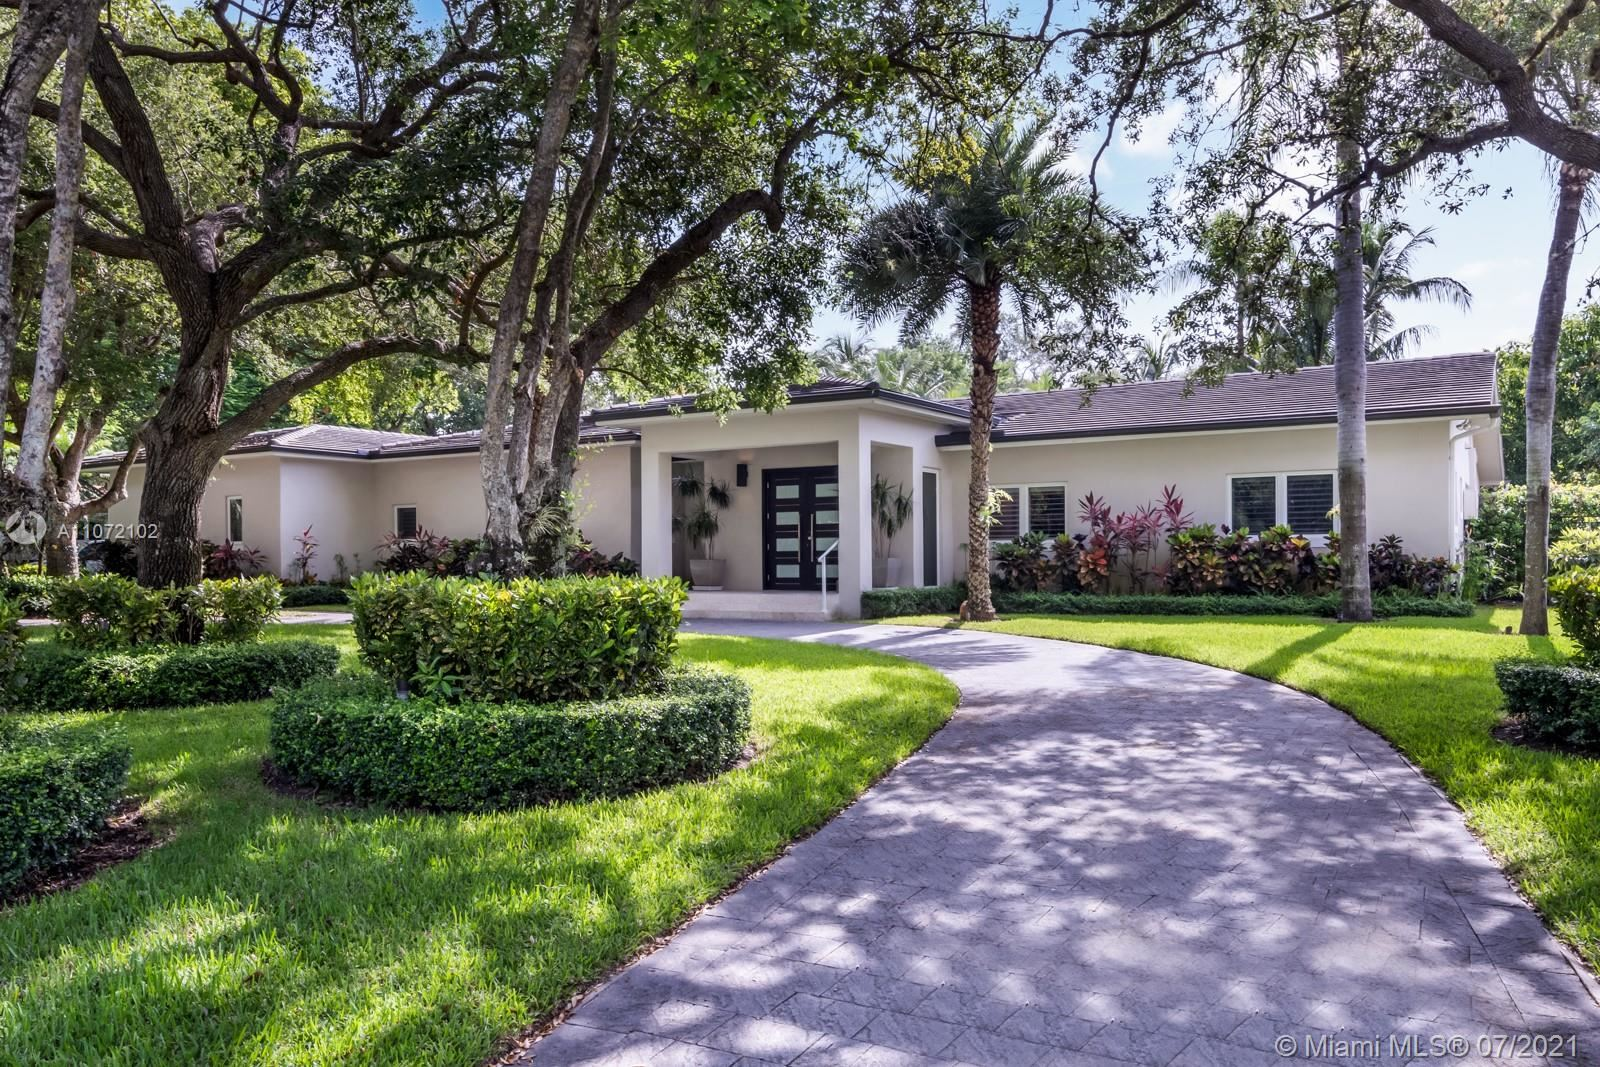 11905 SW 66th Ave, Pinecrest, FL 33156 - #: A11072102